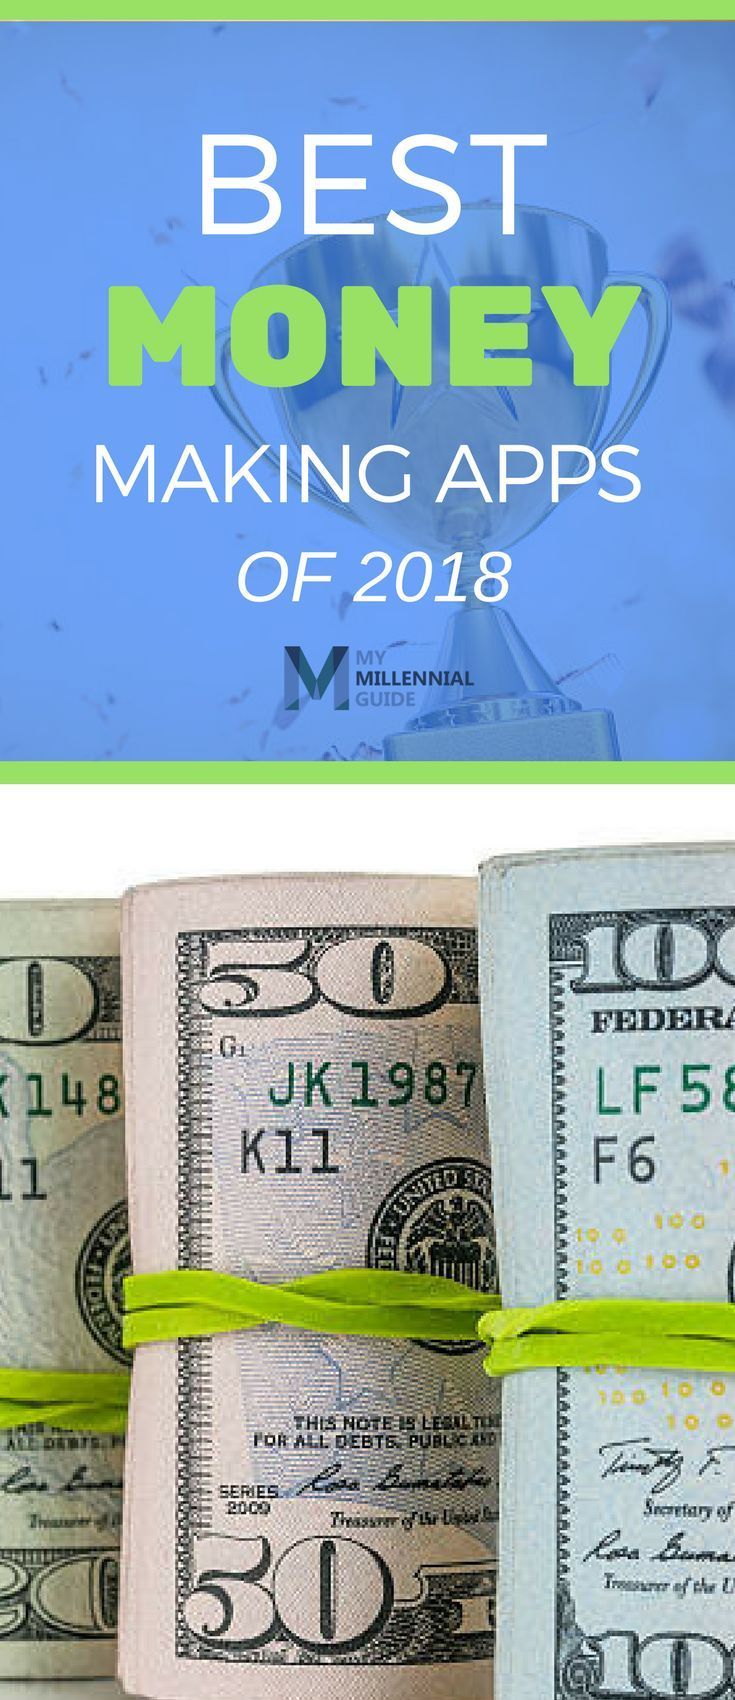 In This Article I Ll Share My List Of The Best Money Making S Did You Know Can Make Just By Taking Paid Online Surveys Or Simply Signing Up